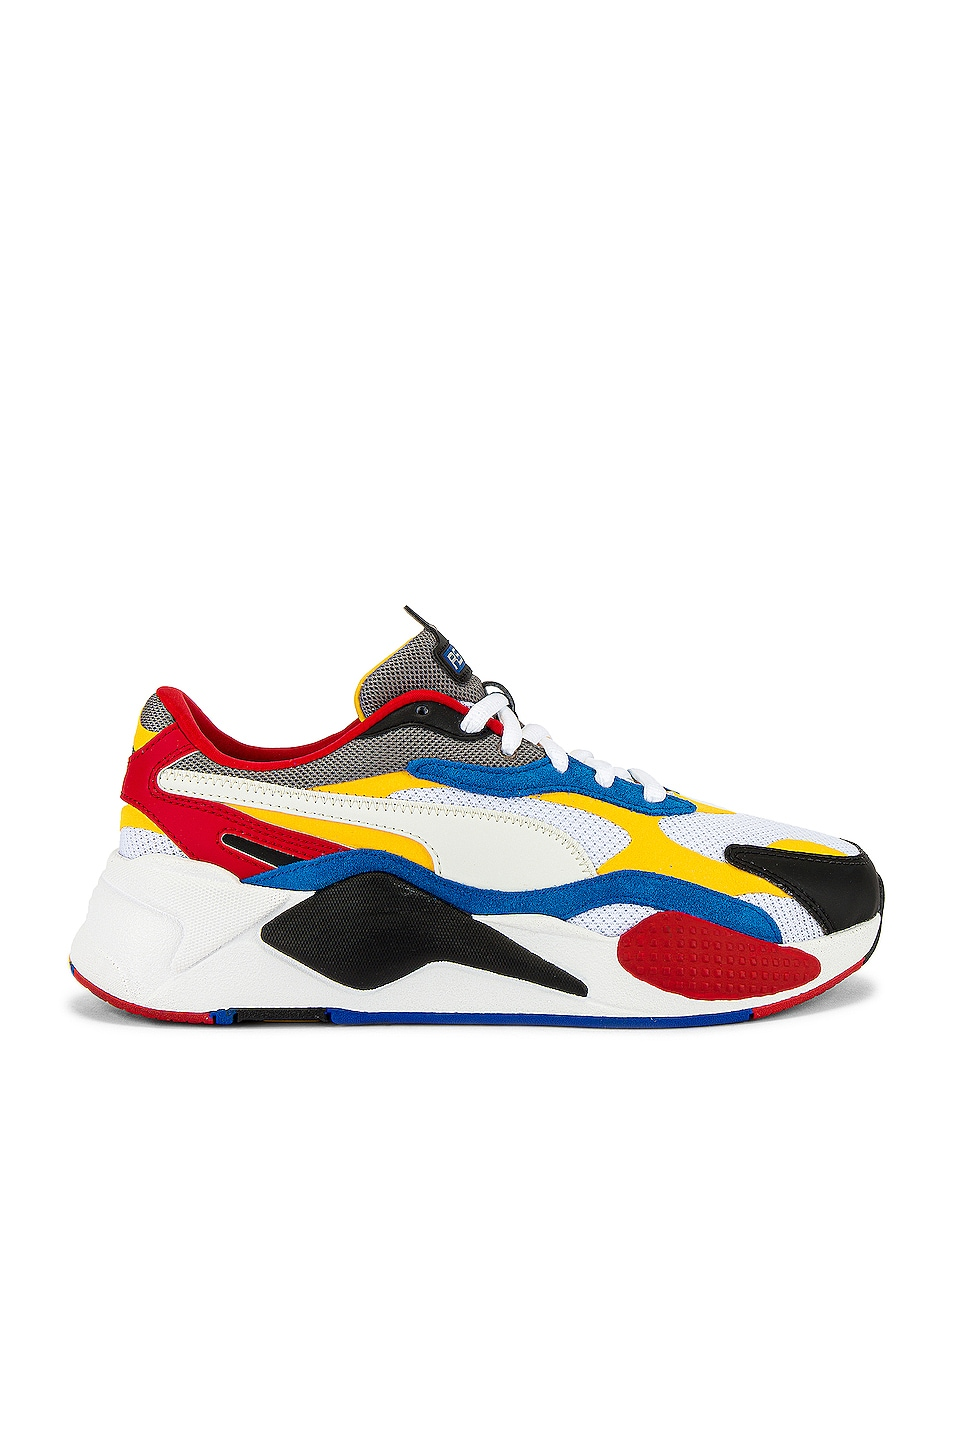 Image 2 of Puma Select RSX Cube RS-X3 Puzzle in Puma White & Spectra Yellow